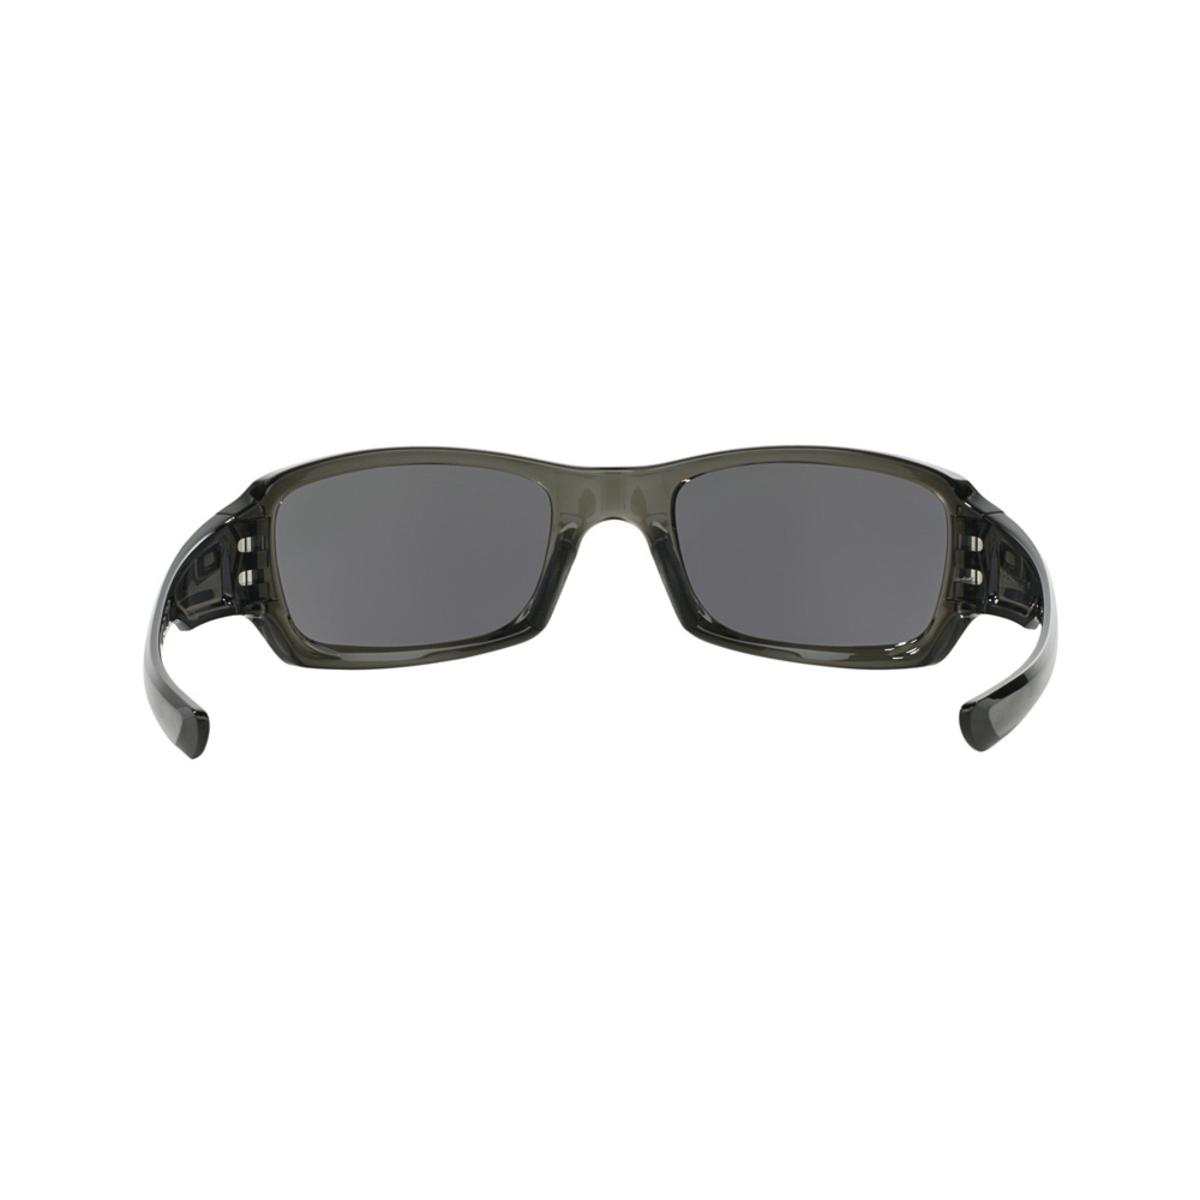 a176061353 Oakley Fives Squared Grey Smoke Sunglasses w Warm Grey - The Warming Store